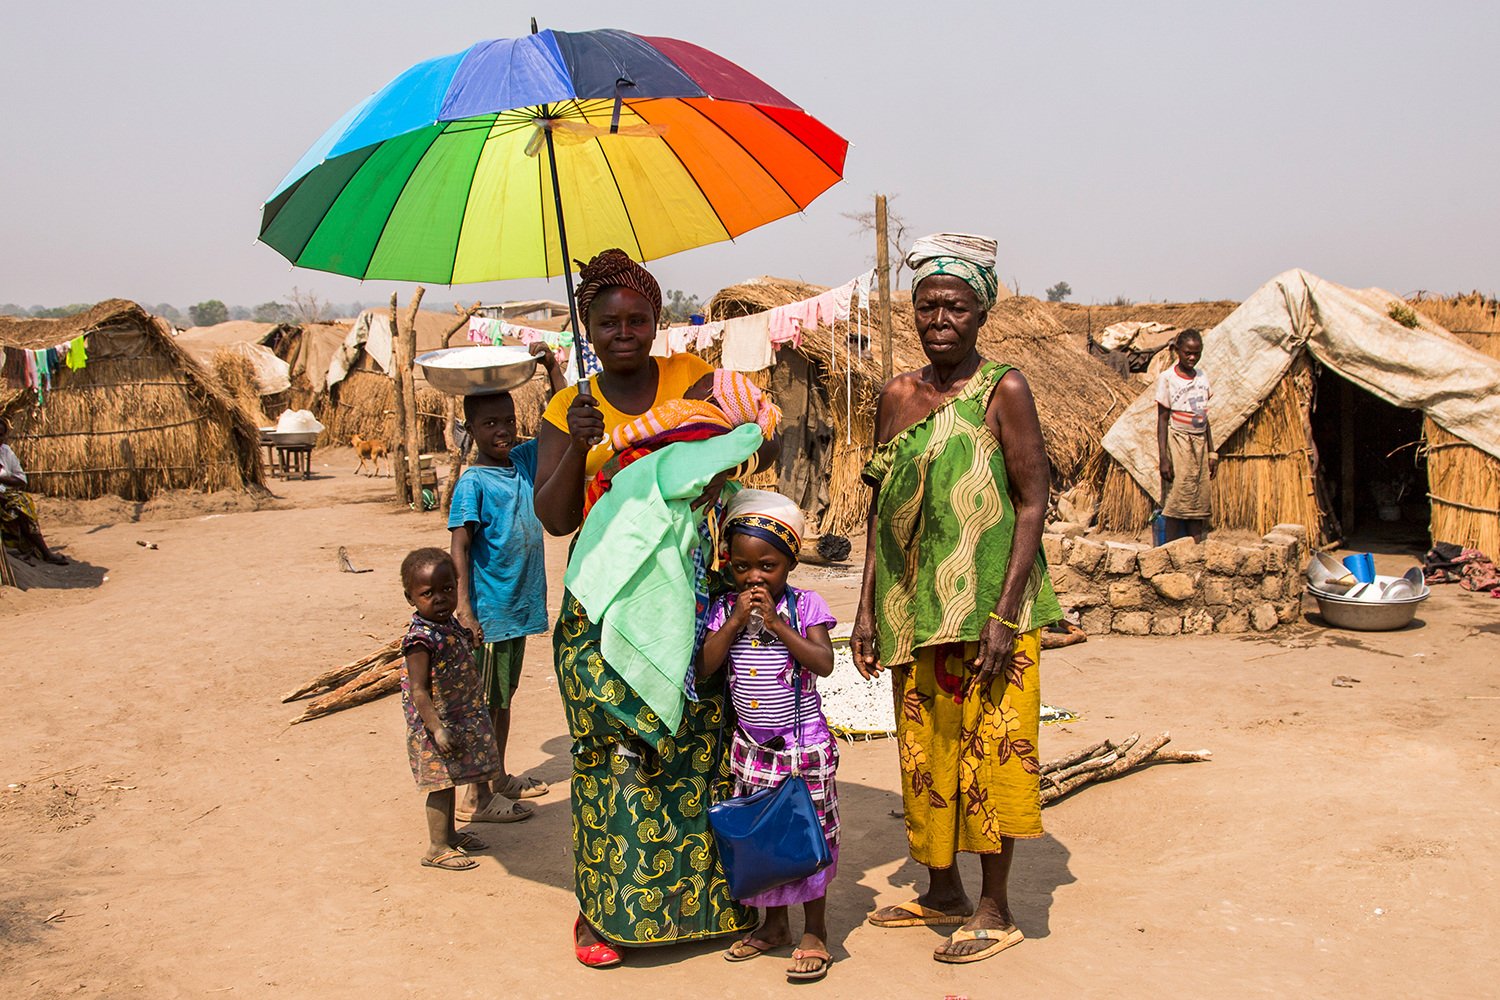 A family shelters from the midday sun